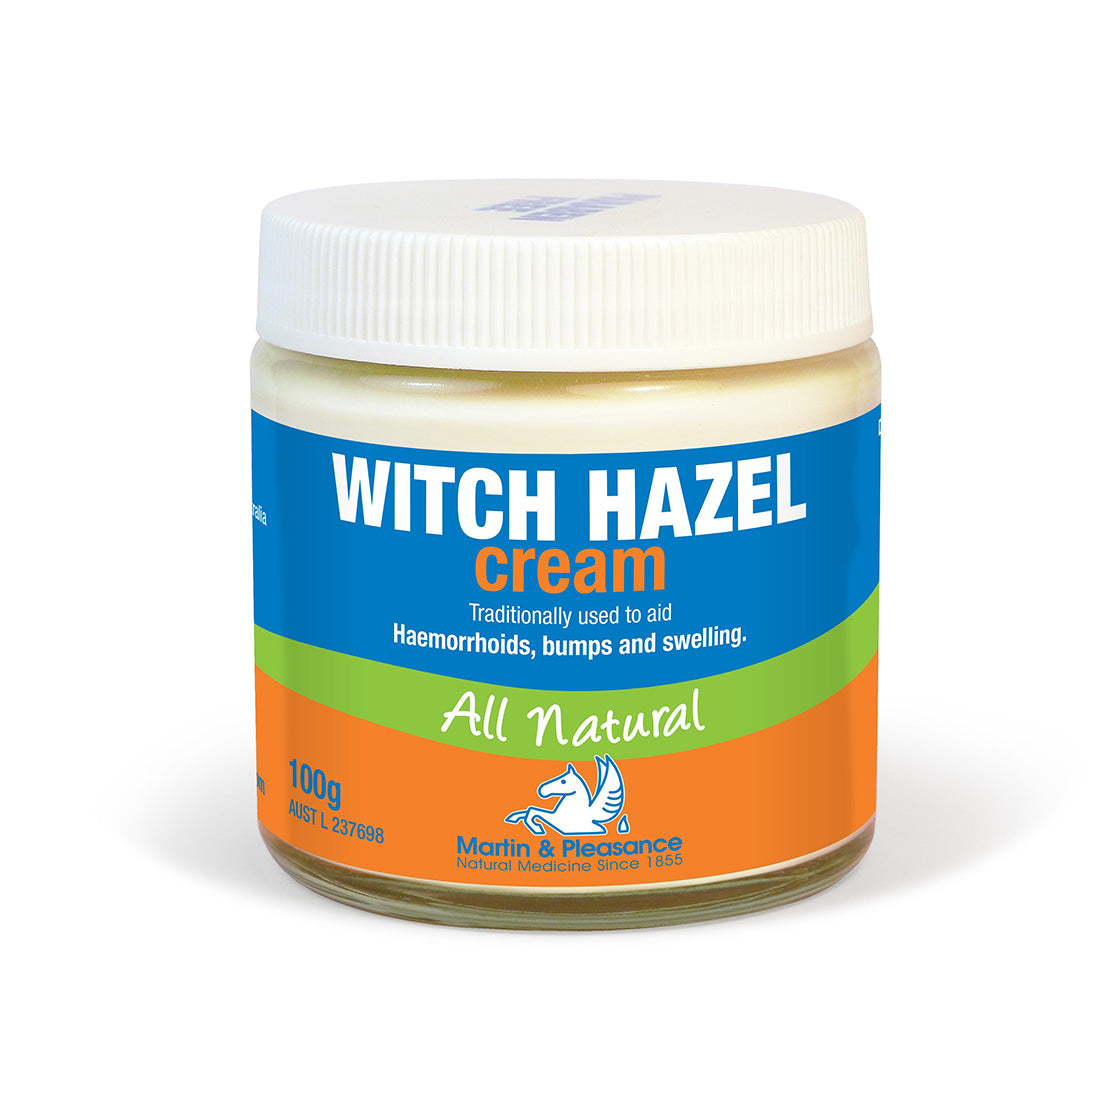 Martin & Pleasance Herbal Cream Witch Hazel 100g